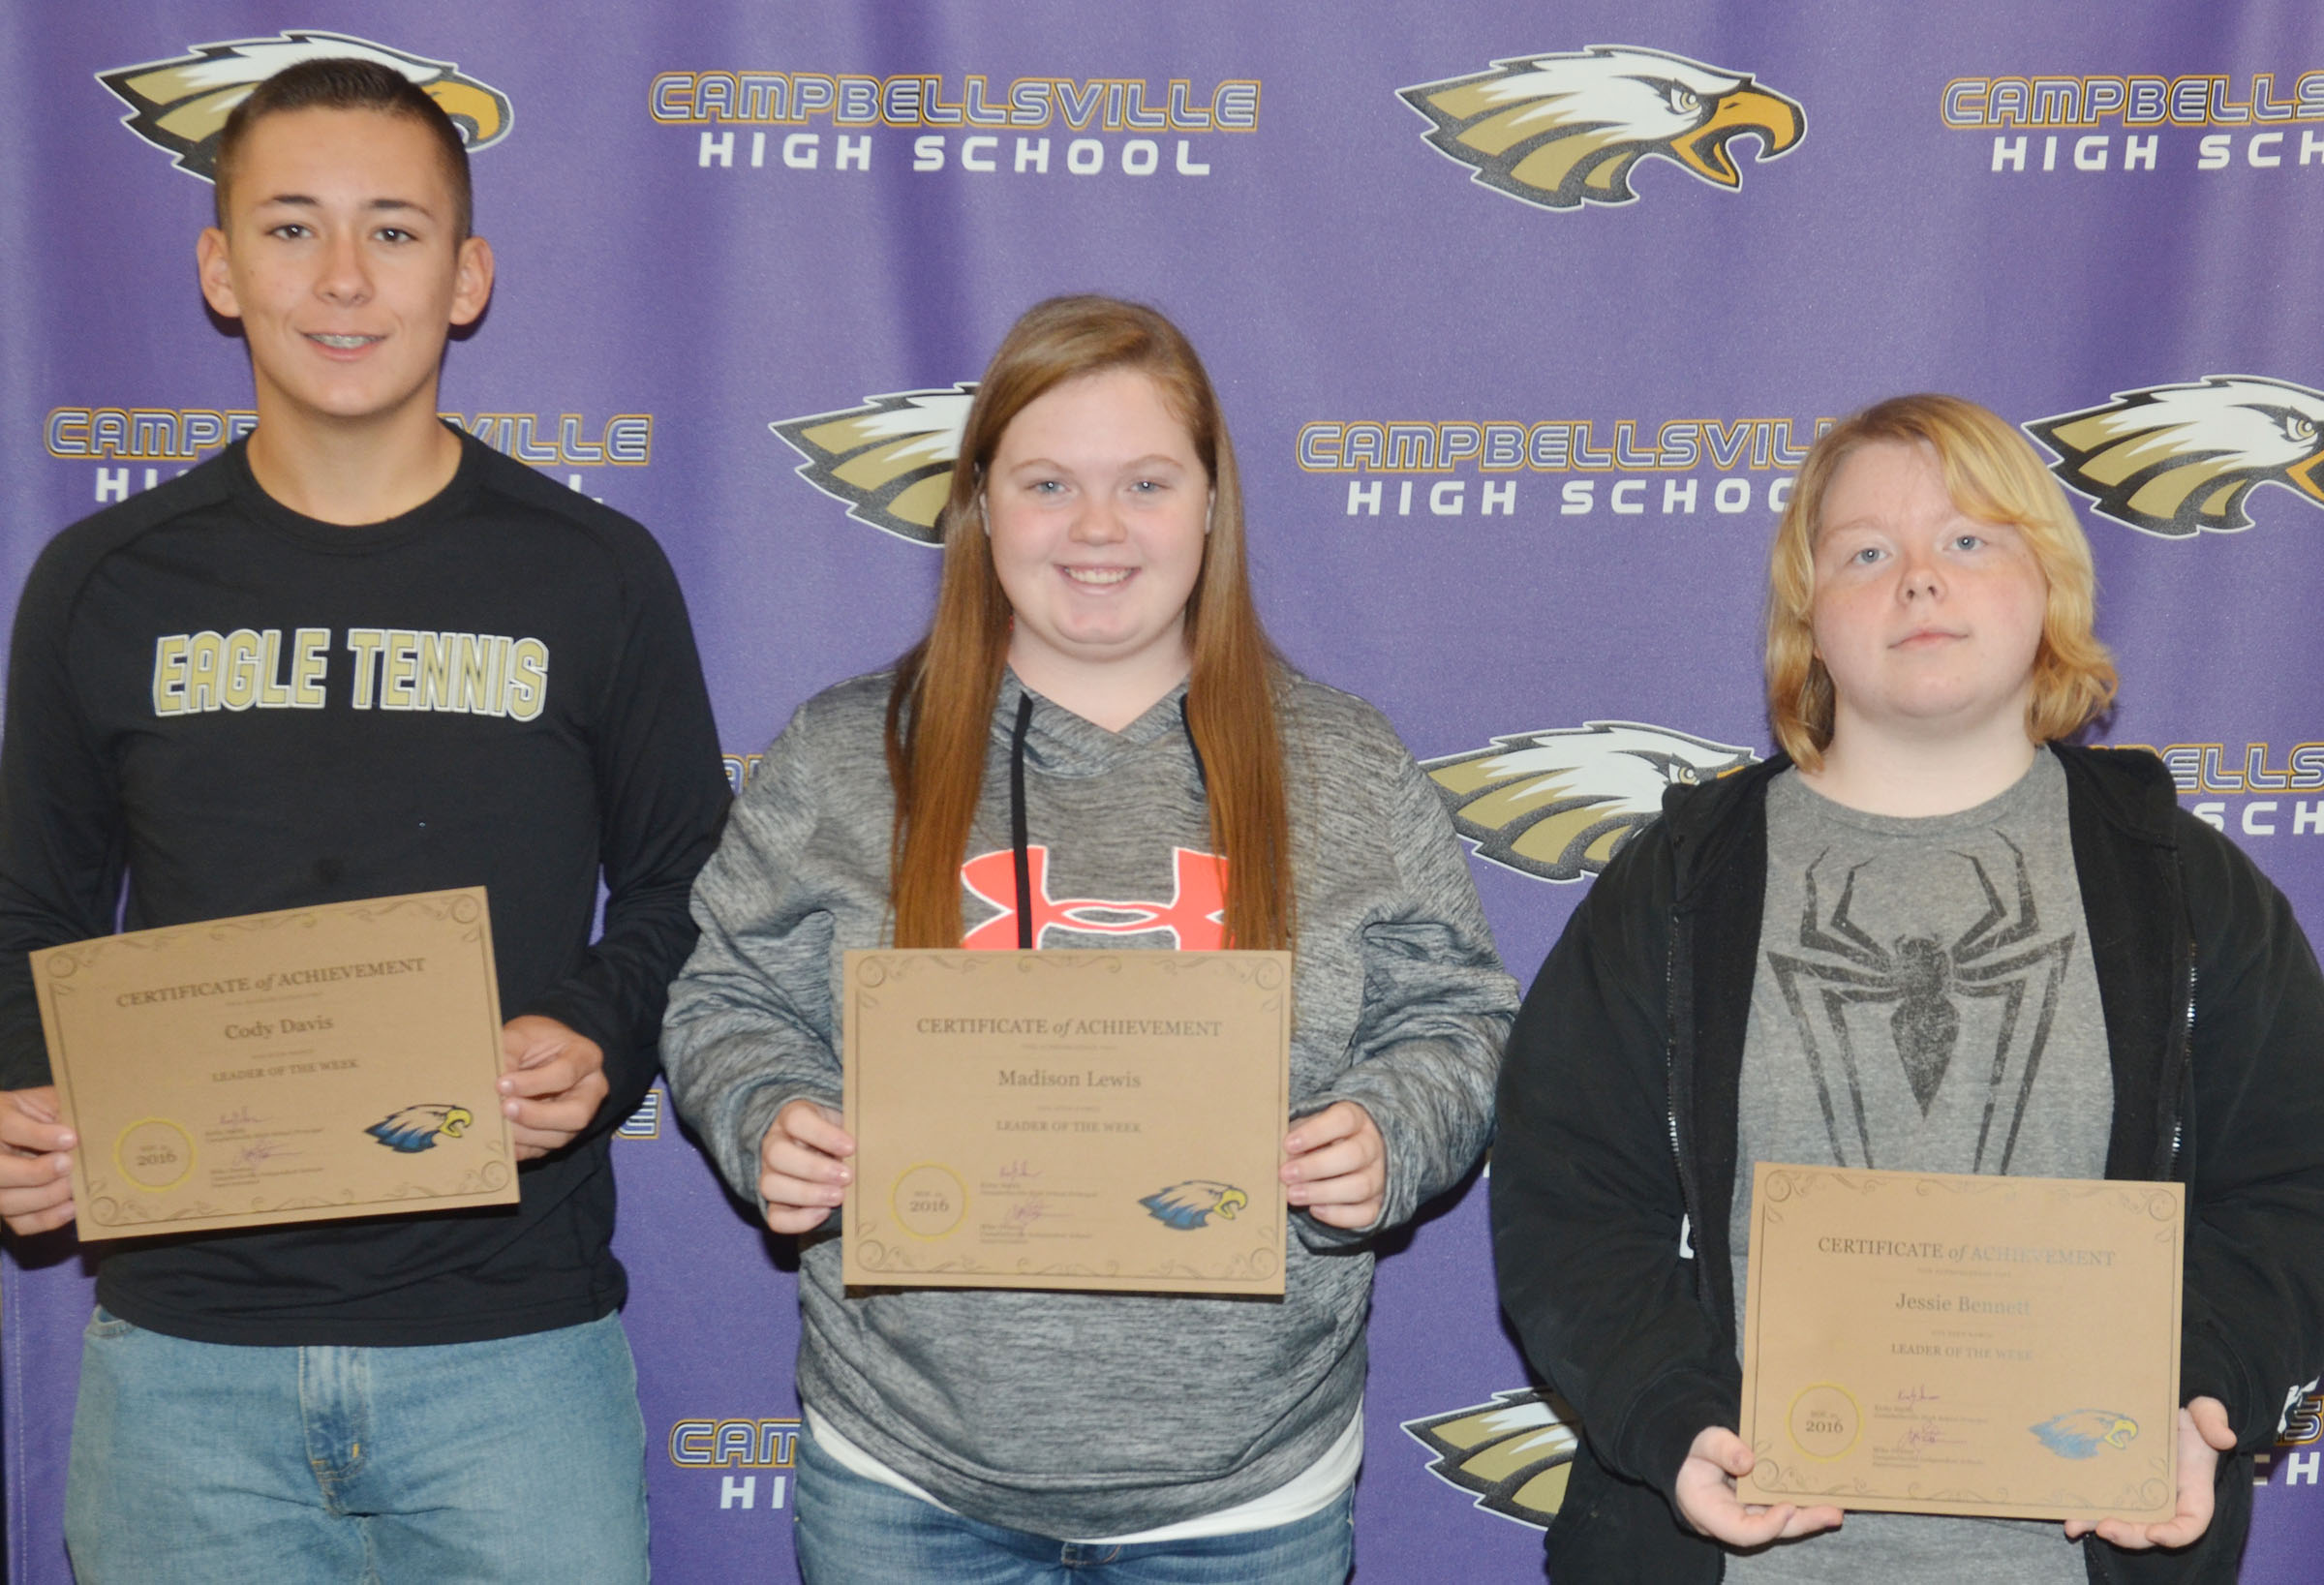 From left are junior Cody Davis, senior Madison Lewis and sophomore Jessie Bennett. Absent from the photo is freshman Grant Rinehart.